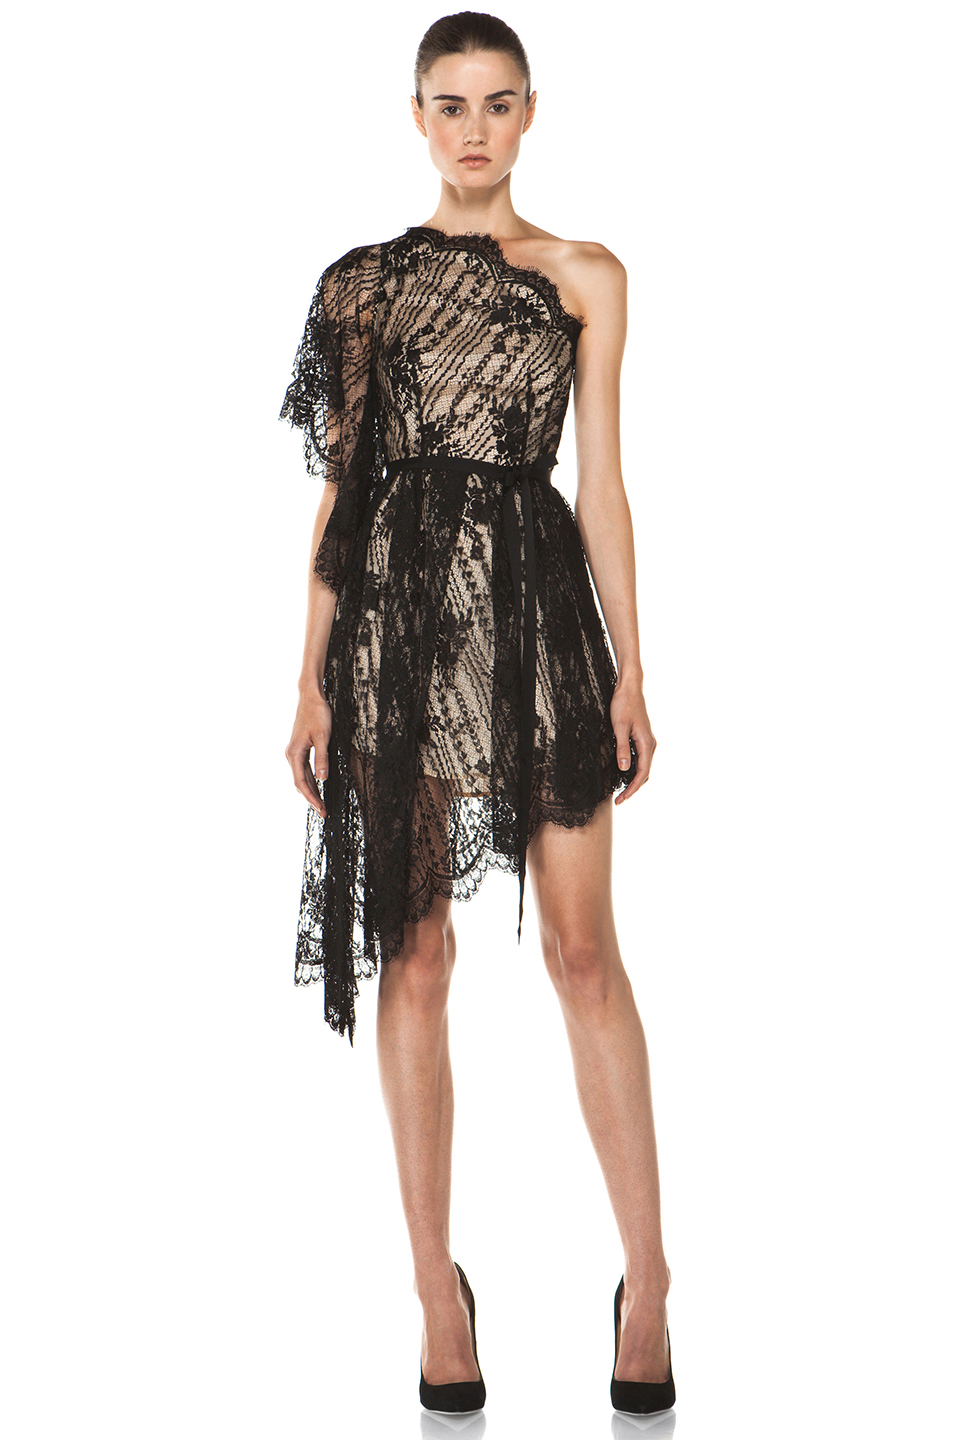 Lover Serenity Lace Knit Dress in Black   FWRD